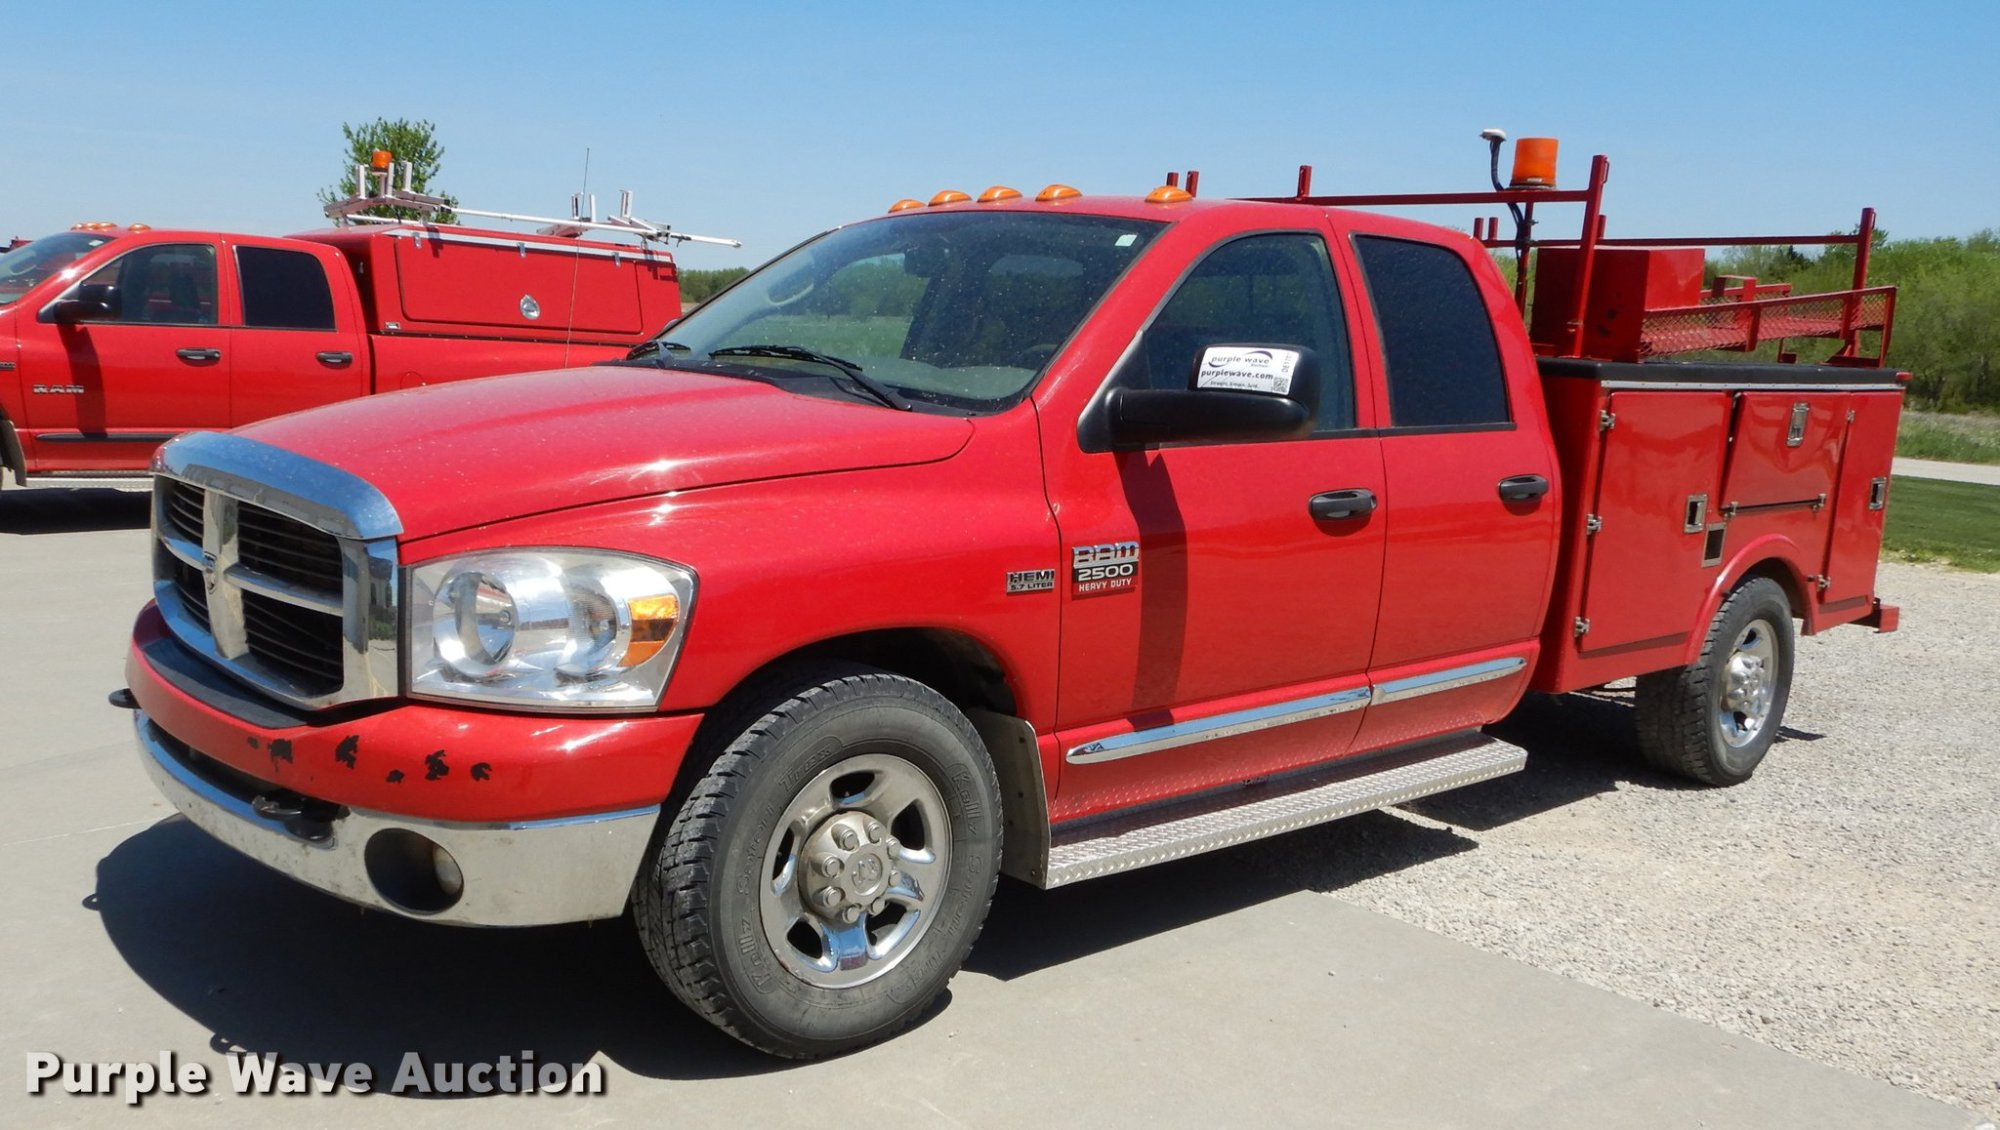 hight resolution of de1707 image for item de1707 2009 dodge ram 2500 quad cab